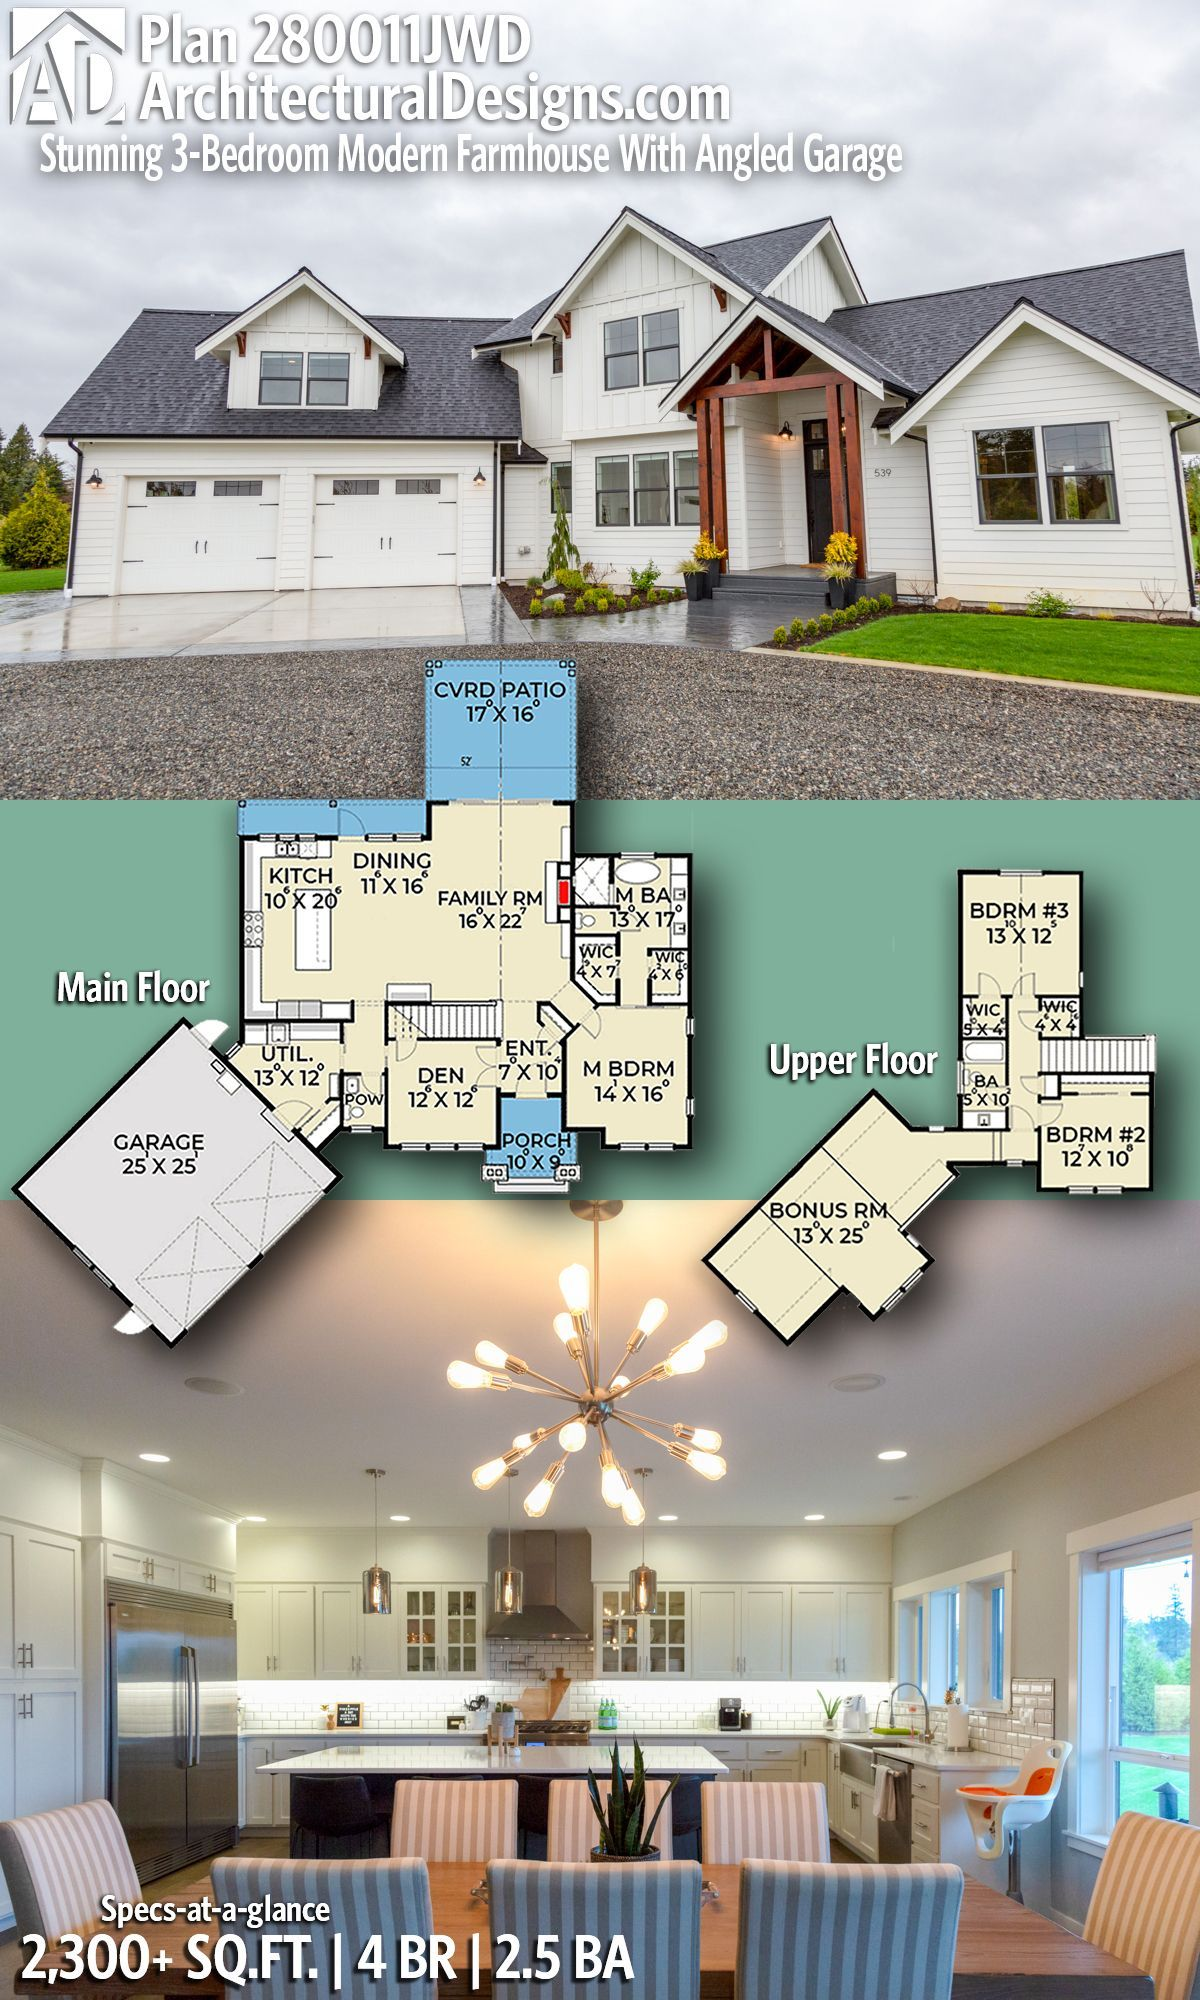 Great option add bath closet to bonus room make nd master guest introducing architectural designs modern farmhouse house plan jwd with also stunning bedroom angled rh pinterest